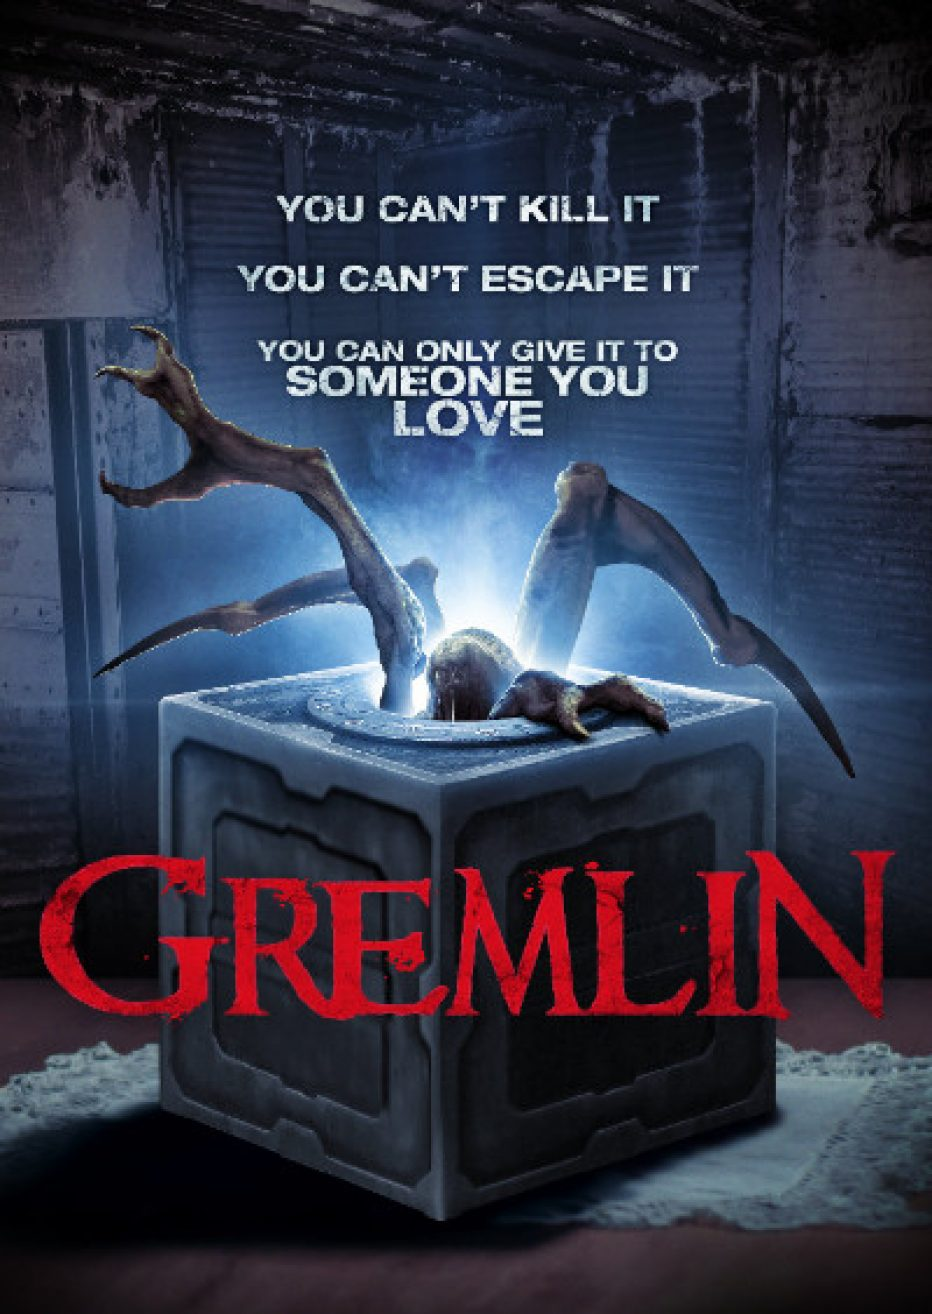 The highly-anticipated GREMLIN premieres on VOD this July from Uncork'd Entertainment!